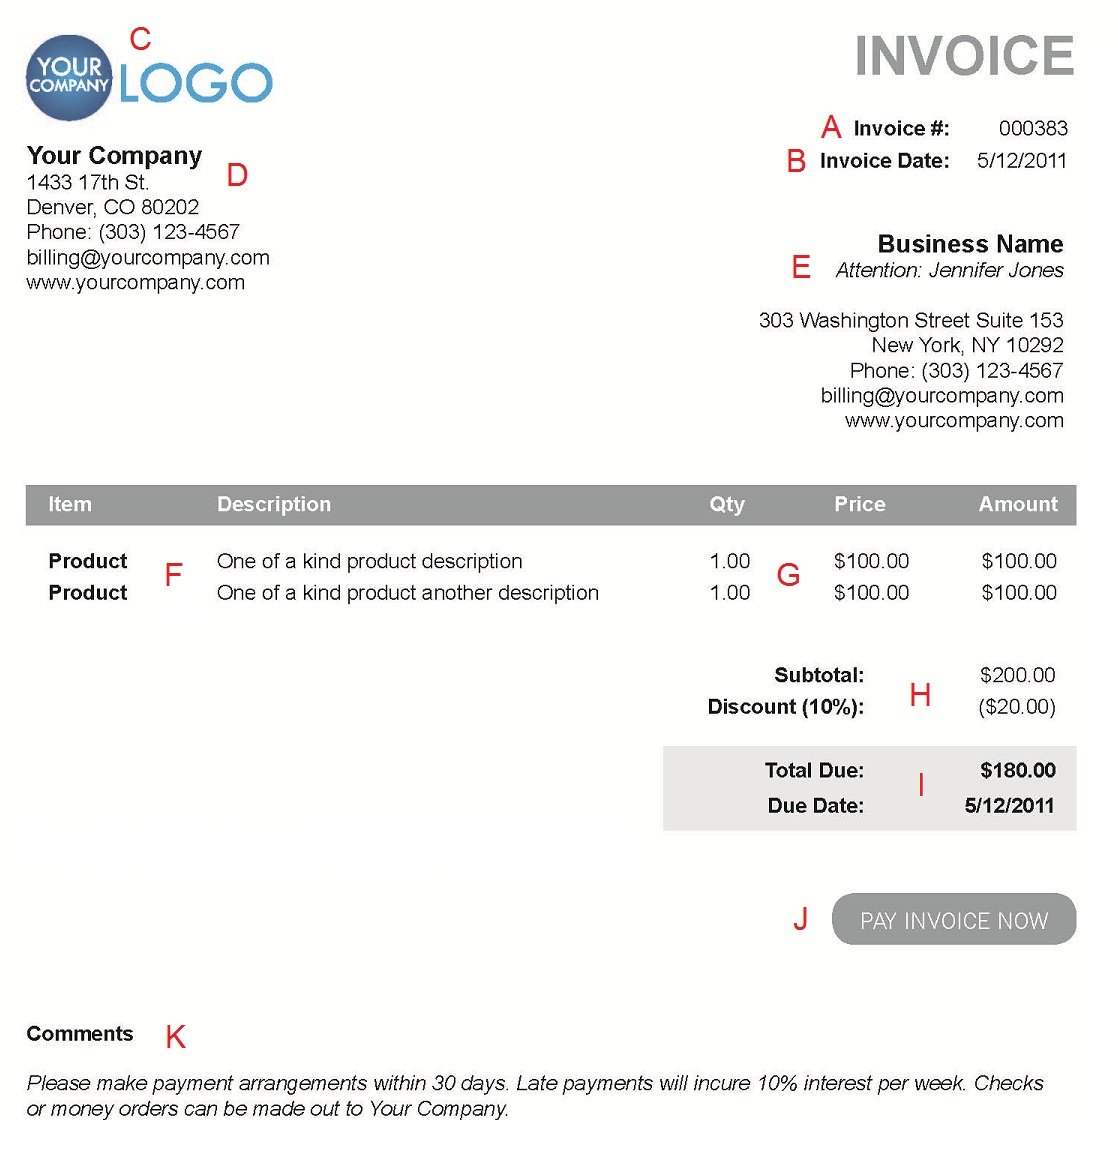 Soulfulpowerus  Gorgeous The  Different Sections Of An Electronic Payment Invoice With Goodlooking A  With Amazing Sbi Life Insurance Premium Receipt Also Credit Card Payment Receipt Template In Addition Rent Receipt Online And What Is Payment Receipt As Well As Bill Payment Receipt Format Additionally Receipt Book Online From Paysimplecom With Soulfulpowerus  Goodlooking The  Different Sections Of An Electronic Payment Invoice With Amazing A  And Gorgeous Sbi Life Insurance Premium Receipt Also Credit Card Payment Receipt Template In Addition Rent Receipt Online From Paysimplecom